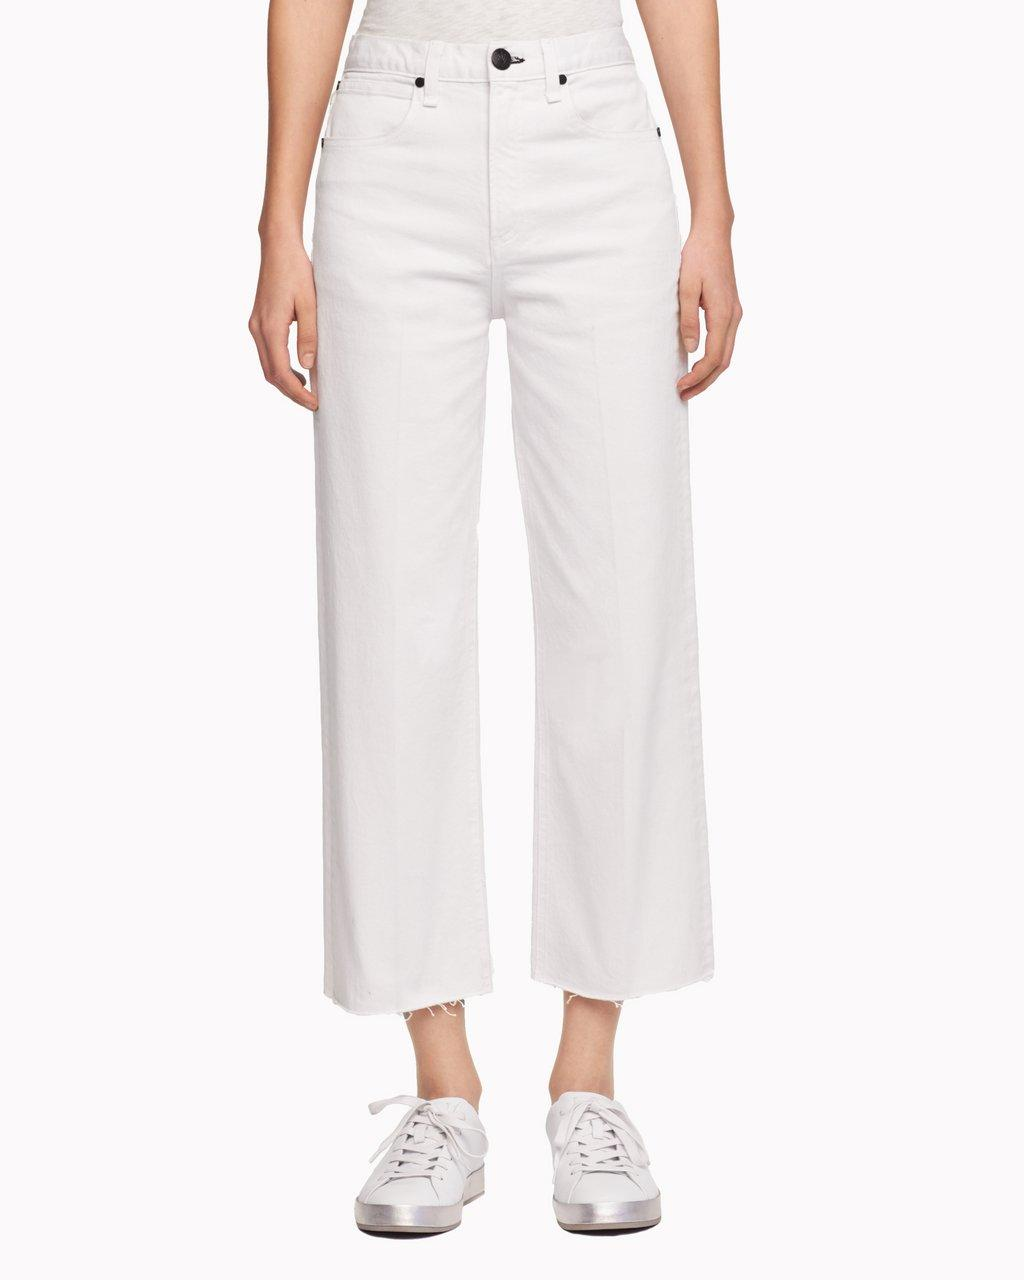 Ankle Justin Trouser Jean - White